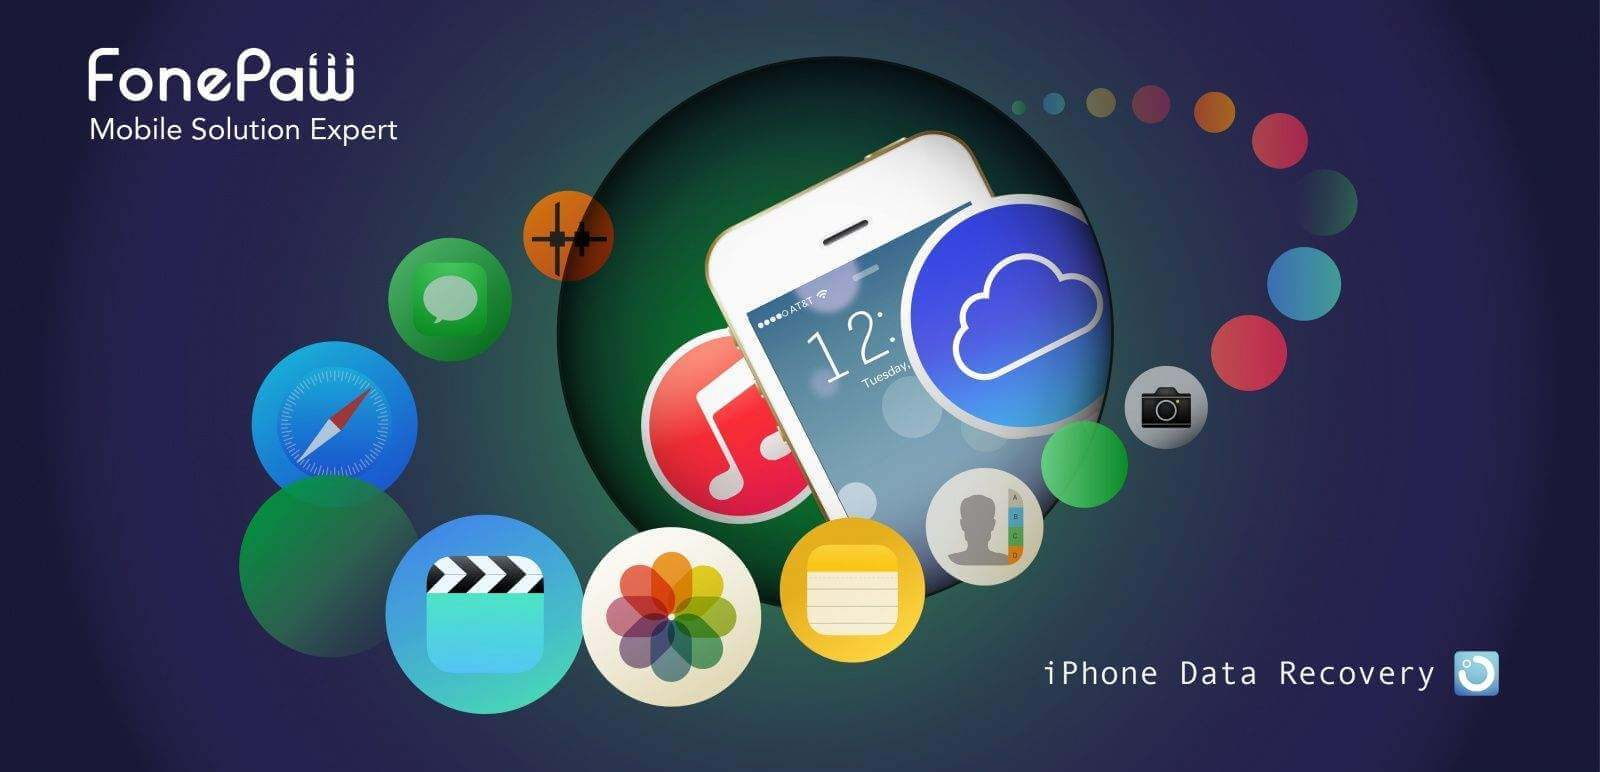 FonePaw iPhone Data Recovery Free Download